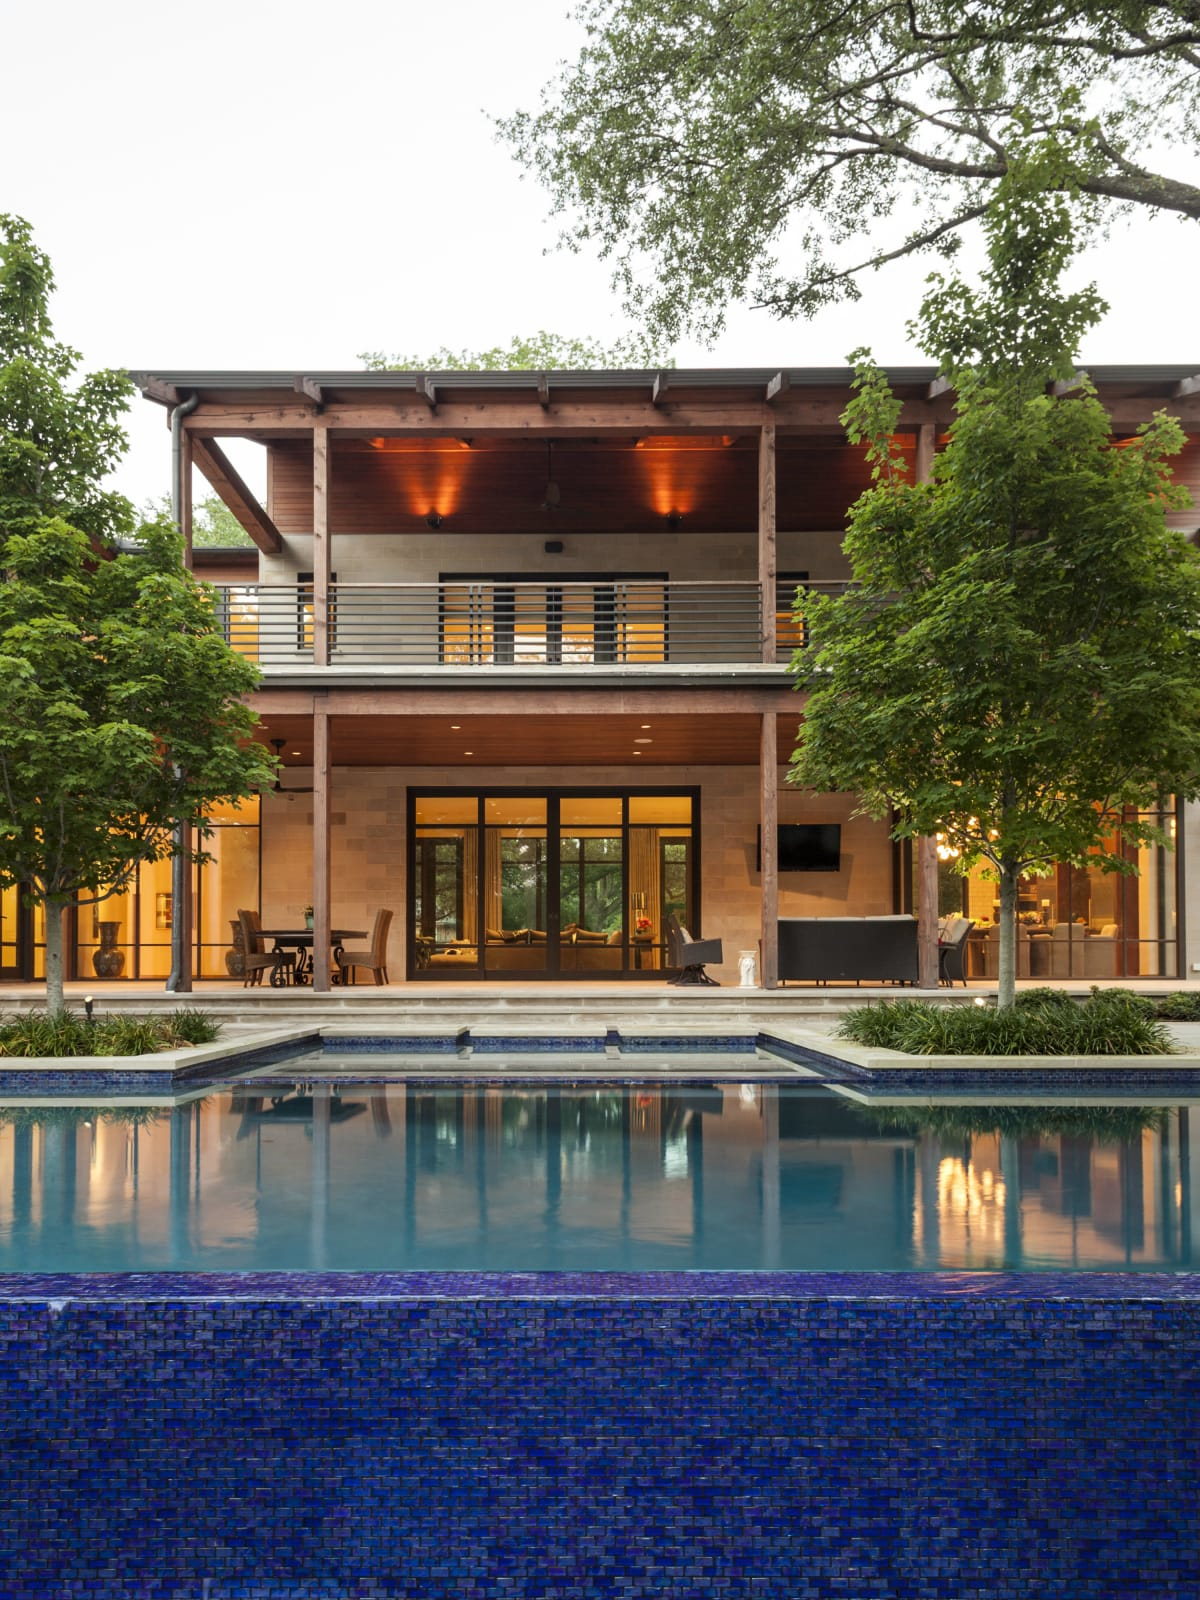 AIA Home Tour, Sunnybrook Lane